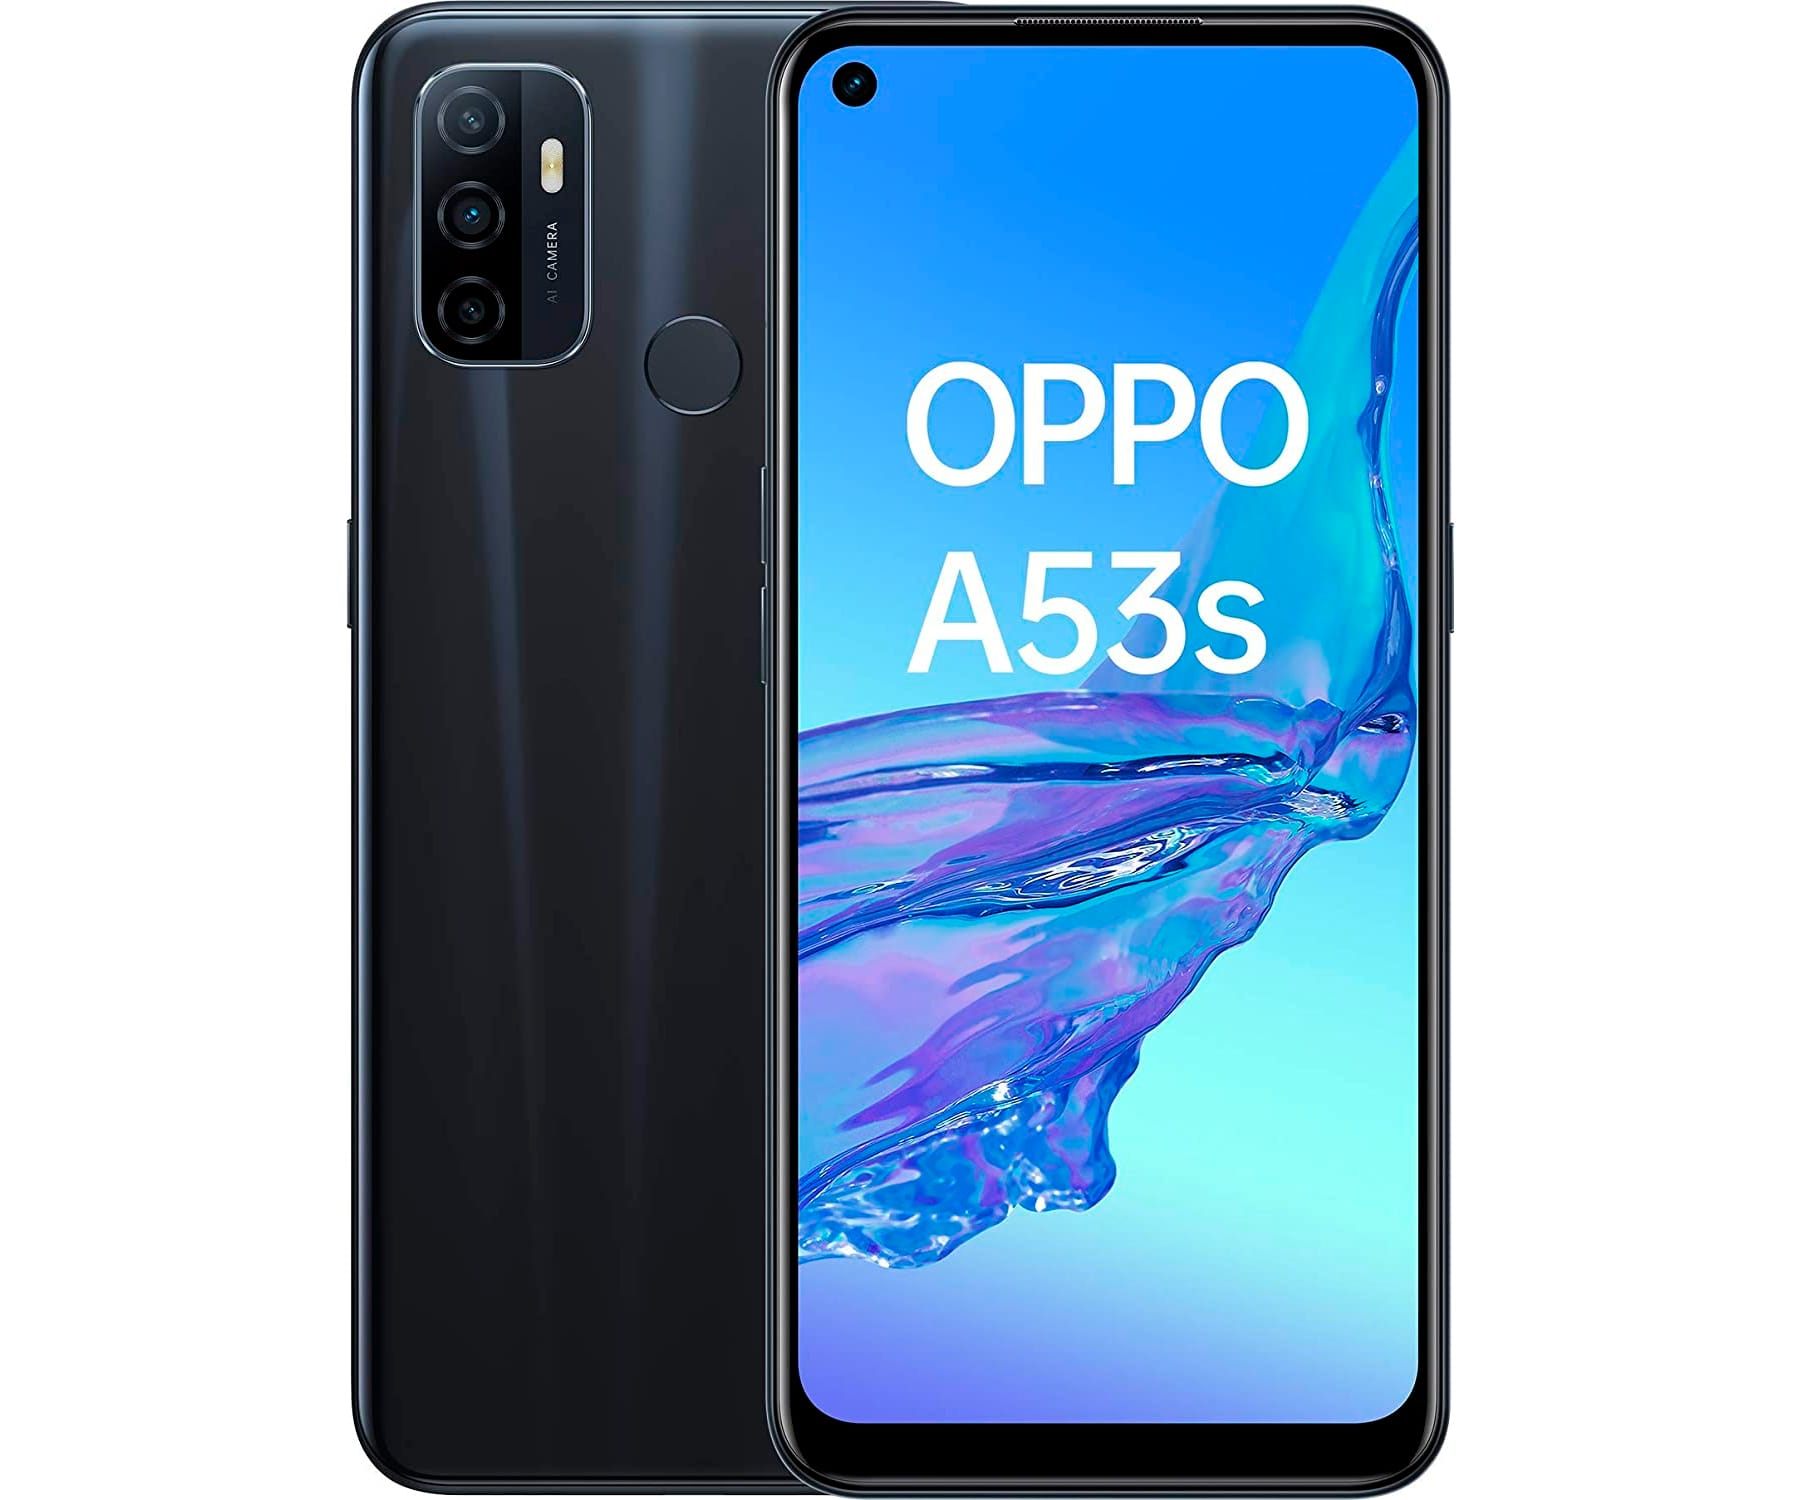 OPPO A53S NEGRO MÓVIL DUAL SIM 4G 6.5'' IPS 90Hz HD+ OCTACORE 128GB 4GB RAM TRICAM 13MP SELFIES 16MP